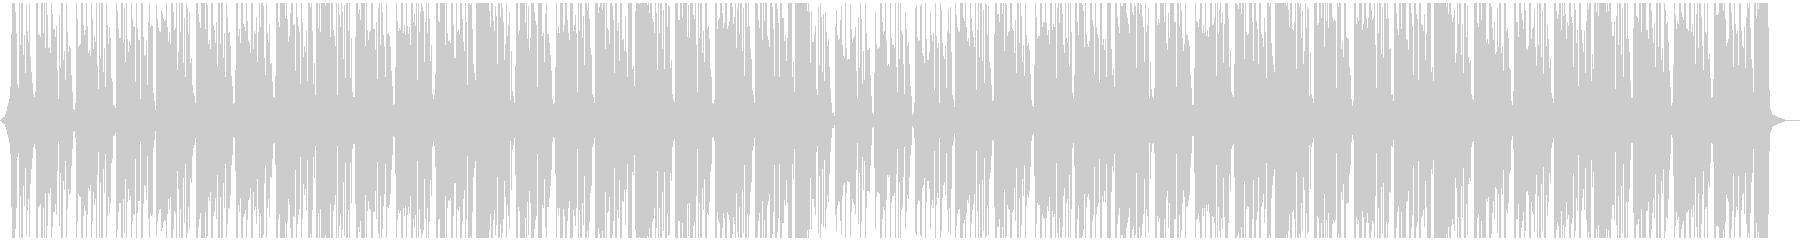 Cool Beating Funk's unreproduced waveform